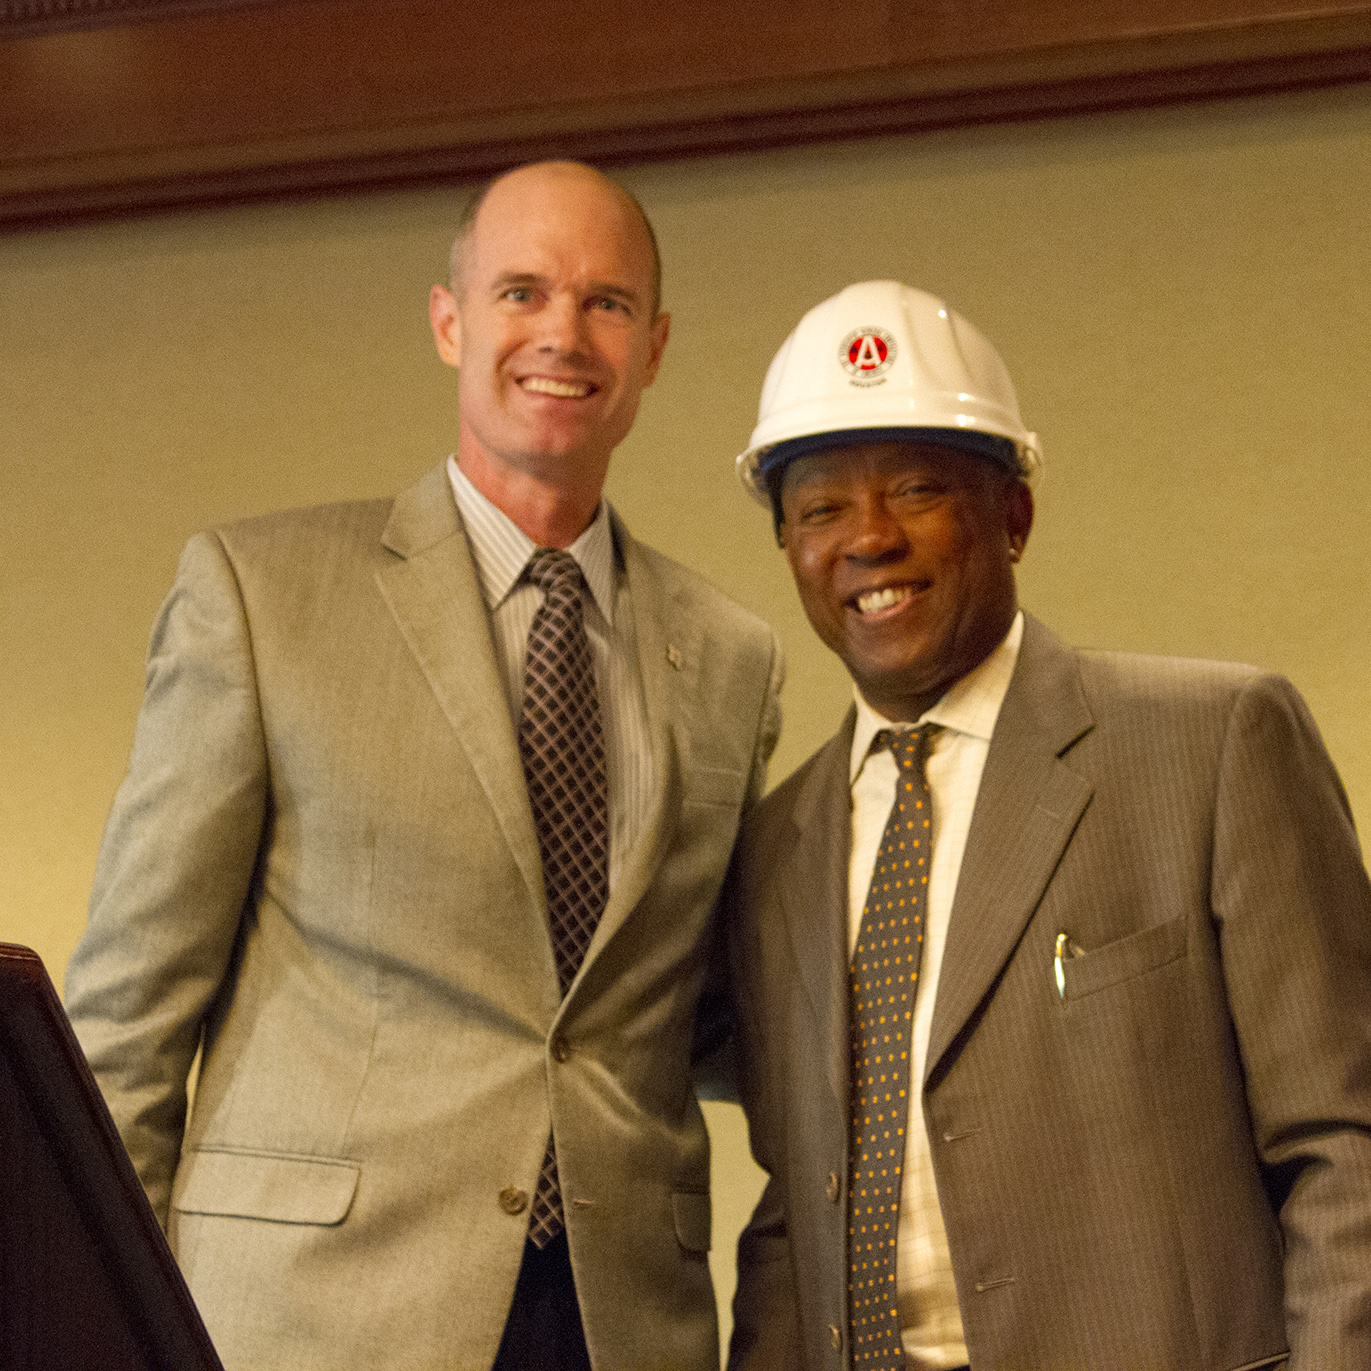 Jeremy Stovall with Houston Mayor Sylvester Turner